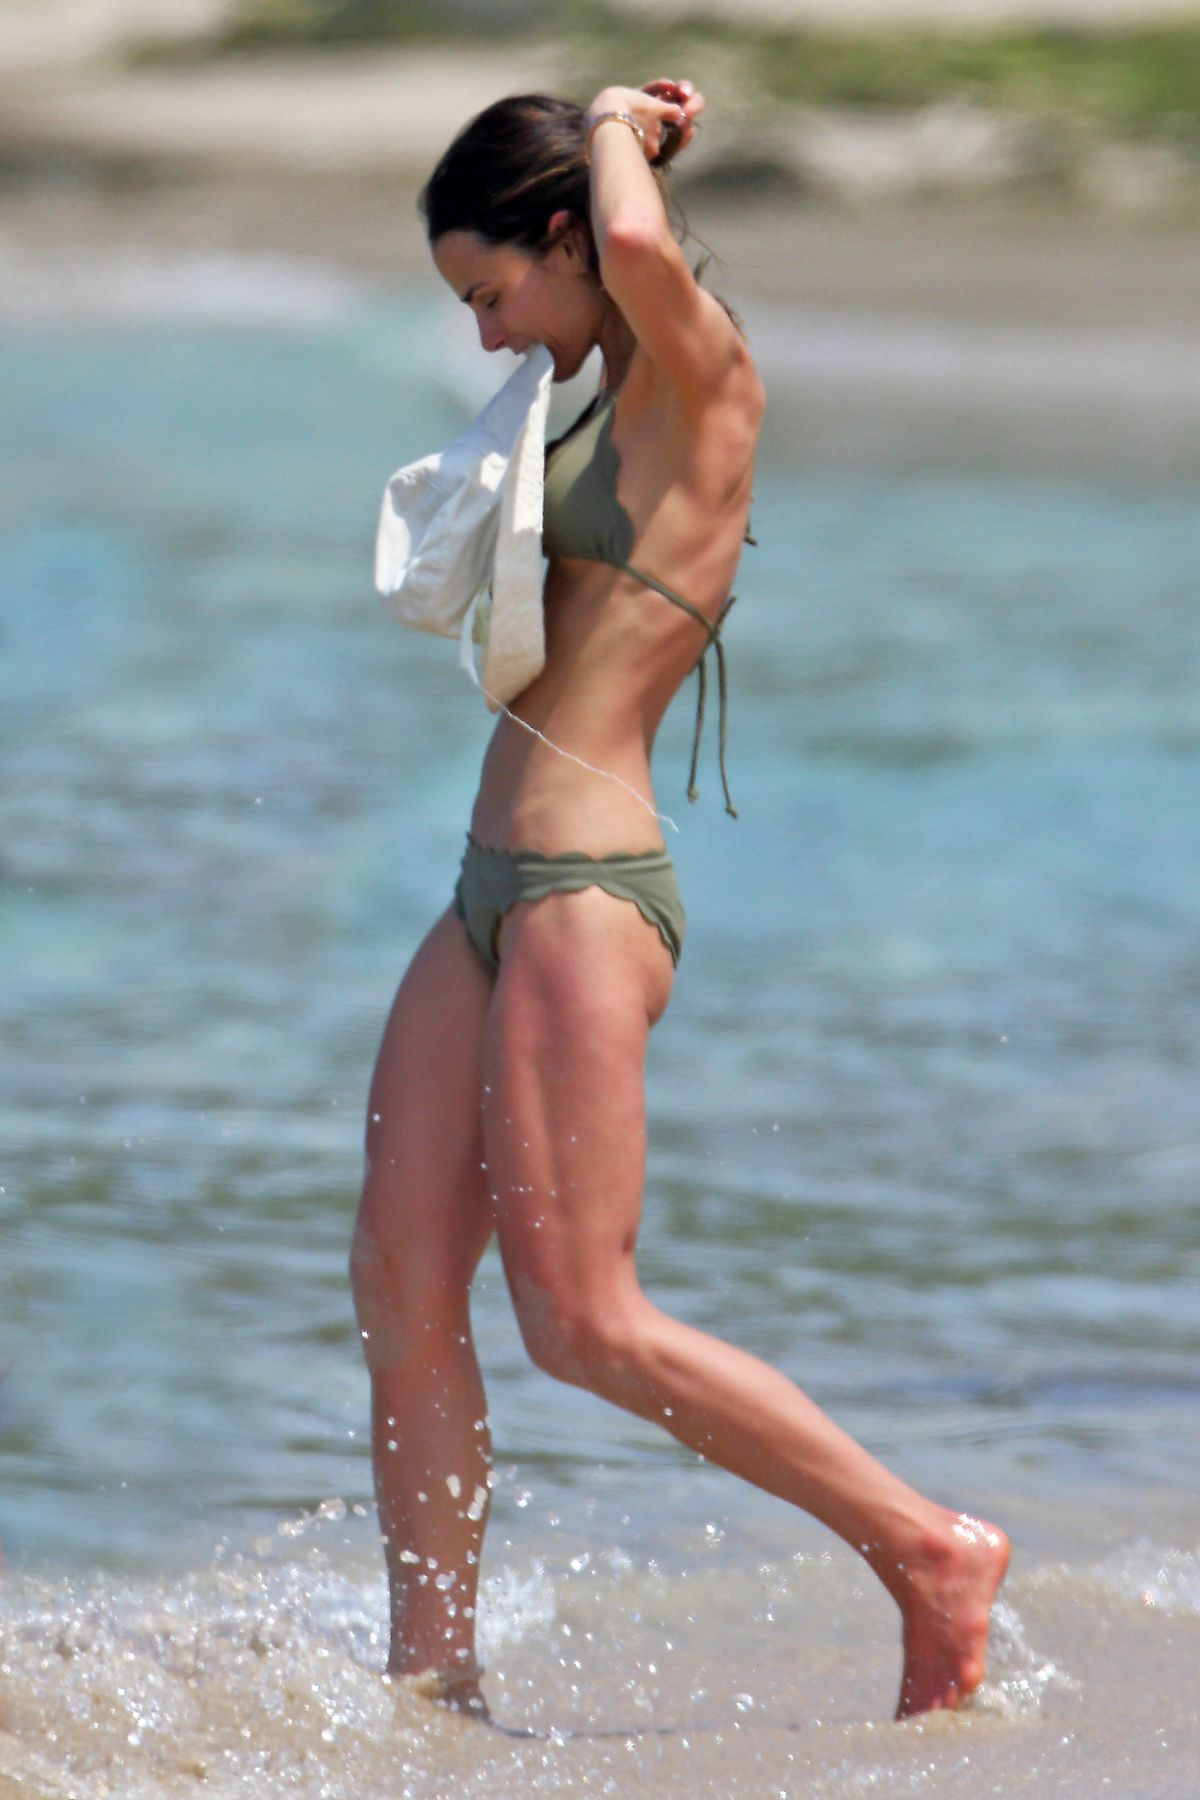 Jordana Brewster In a bikini on a beach during a vacation ... Katie Holmes And Jamie Foxx